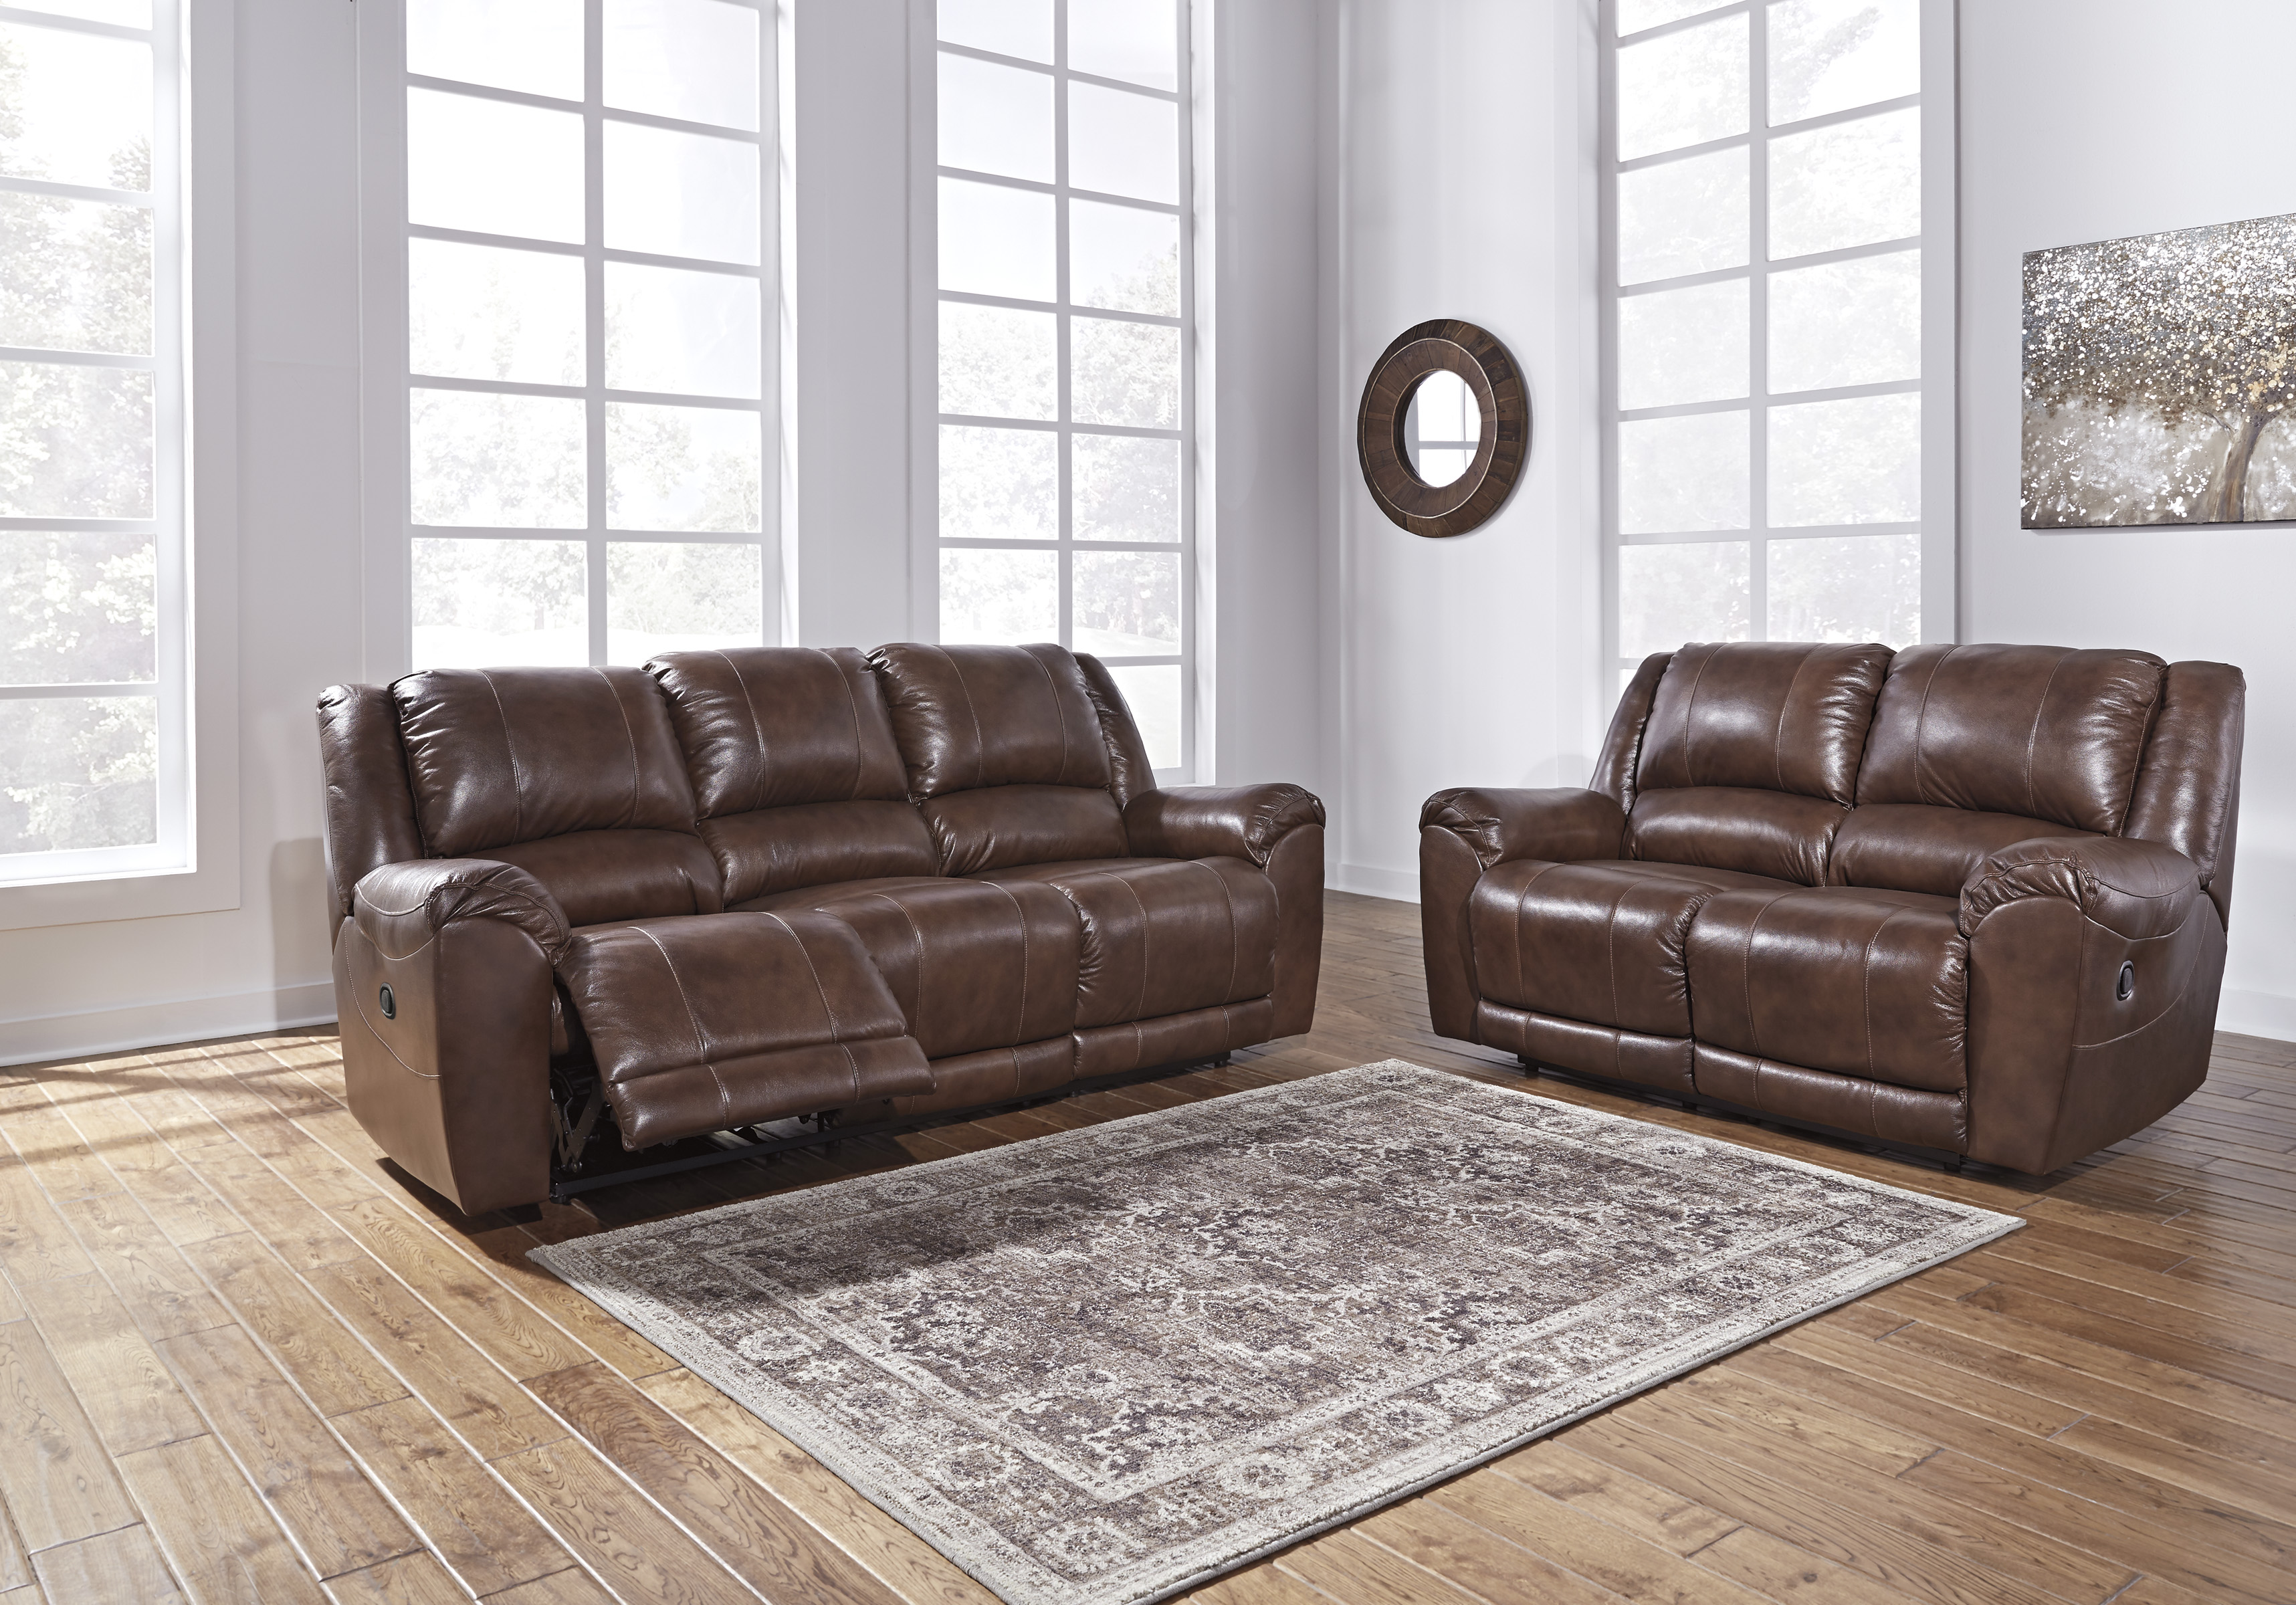 Persiphone Canyon Reclining Sofa & Loveseat,Signature Design By Ashley